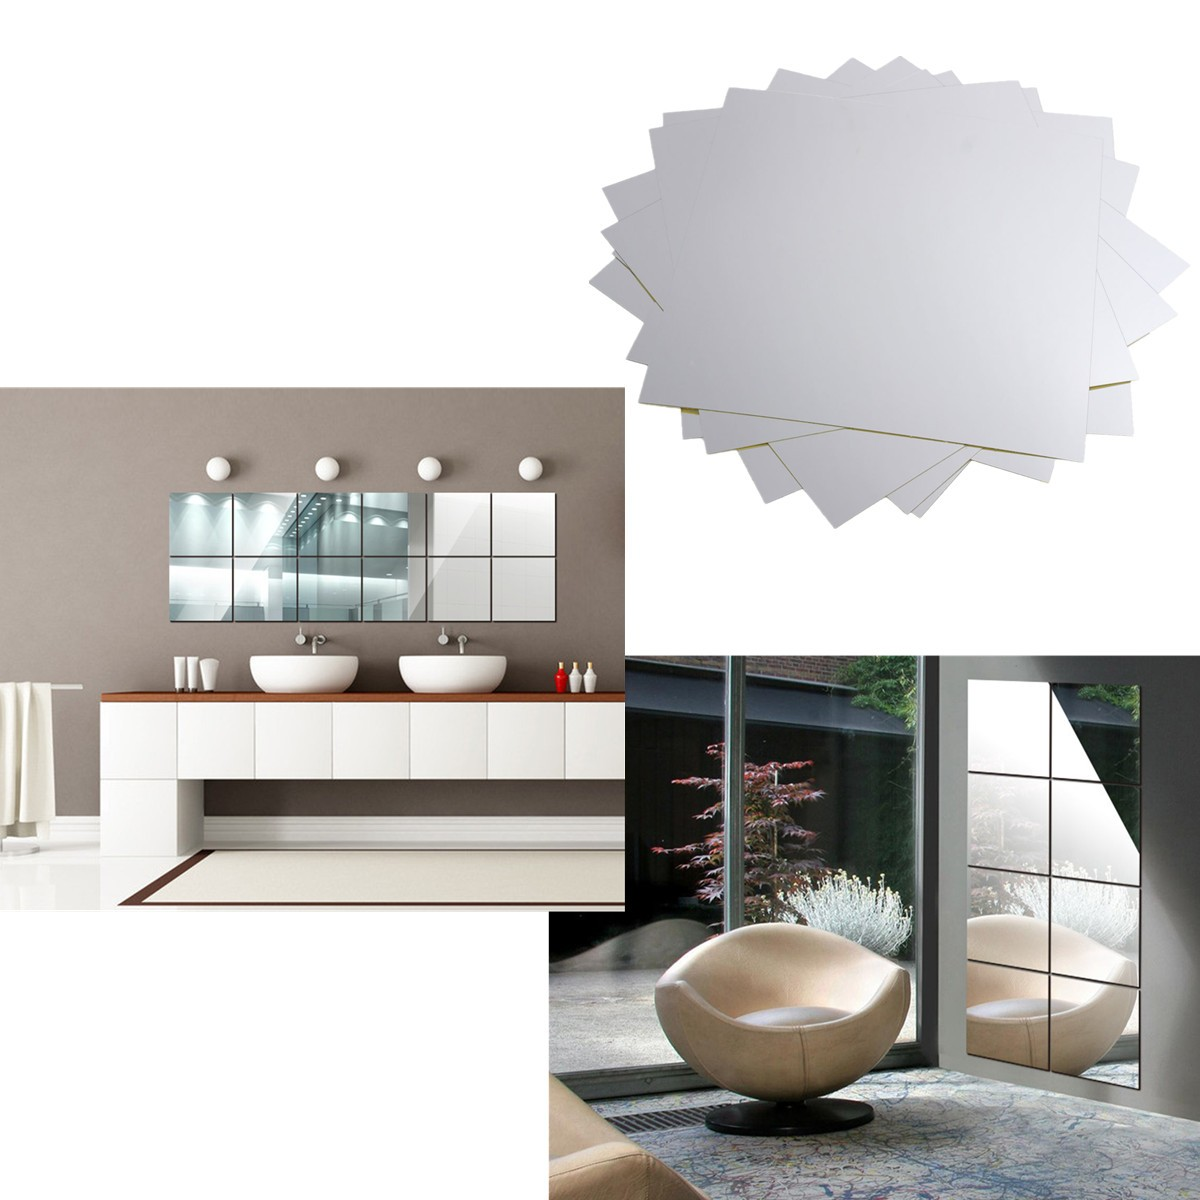 9X Big Square Mirror Tile Wall Stickers 3D Decal Mosaic ...